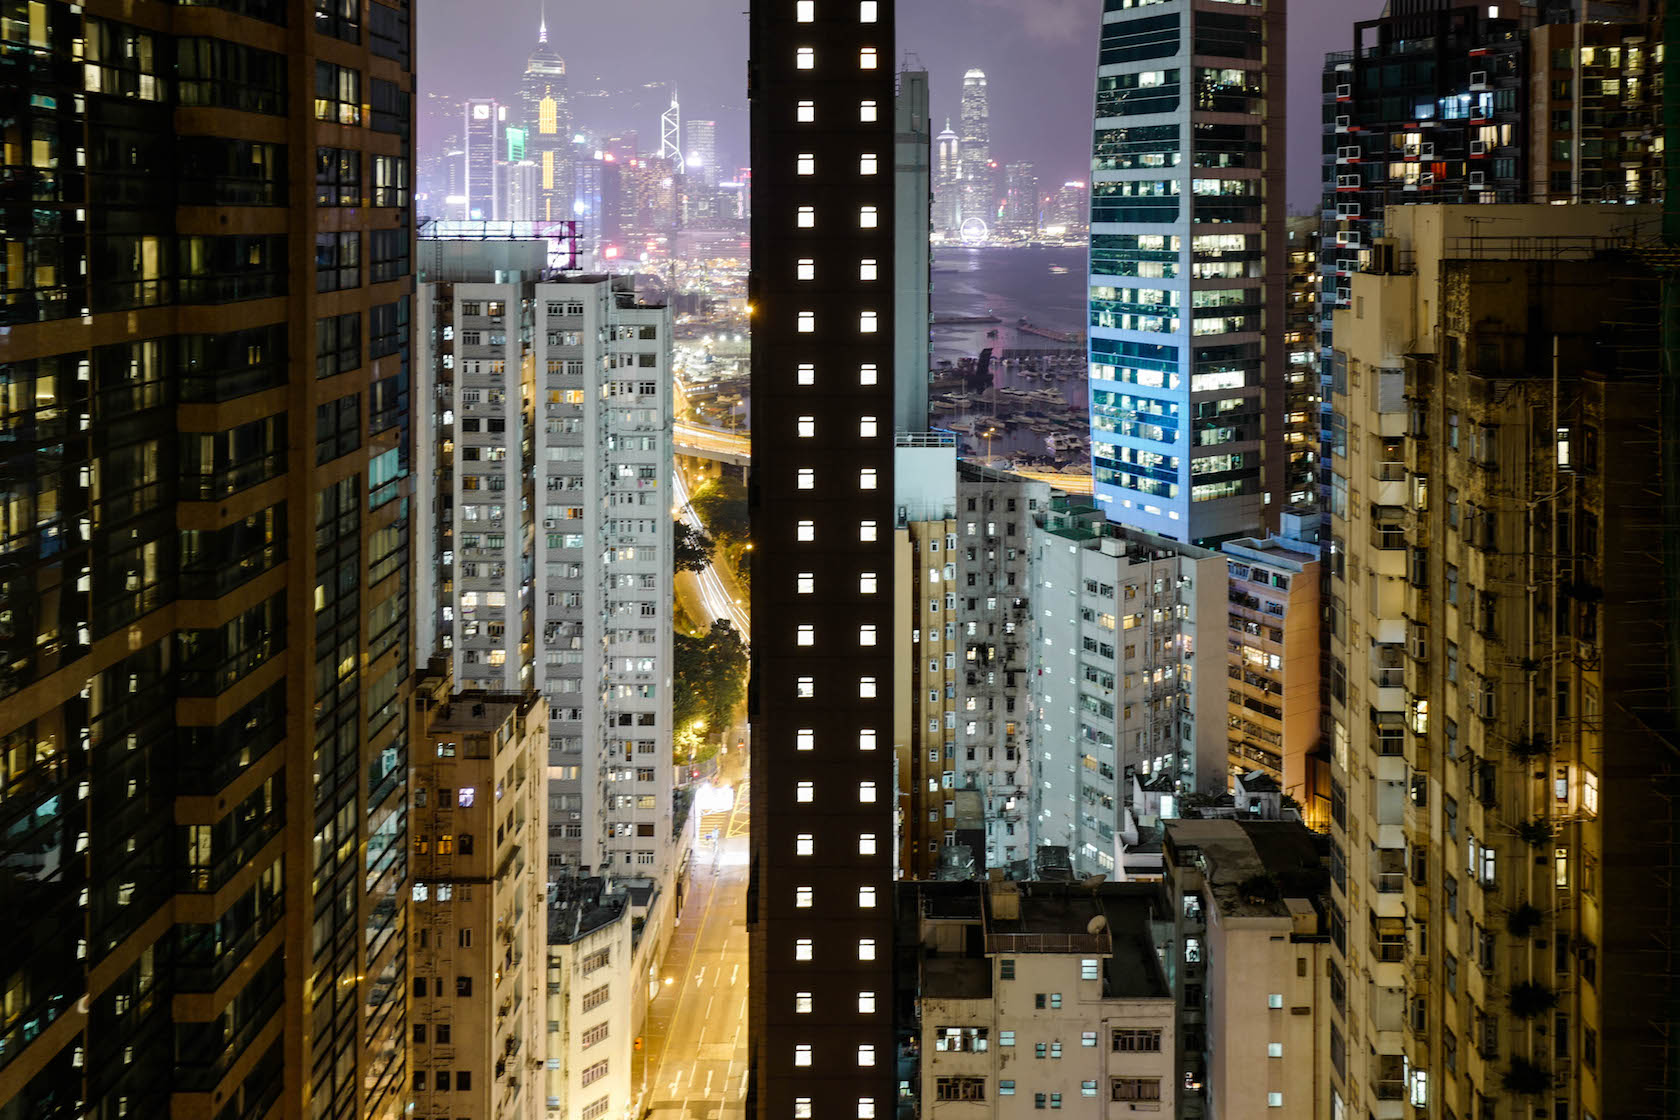 Hong Kong Lights Cityscape at night architecture rooftop urbex